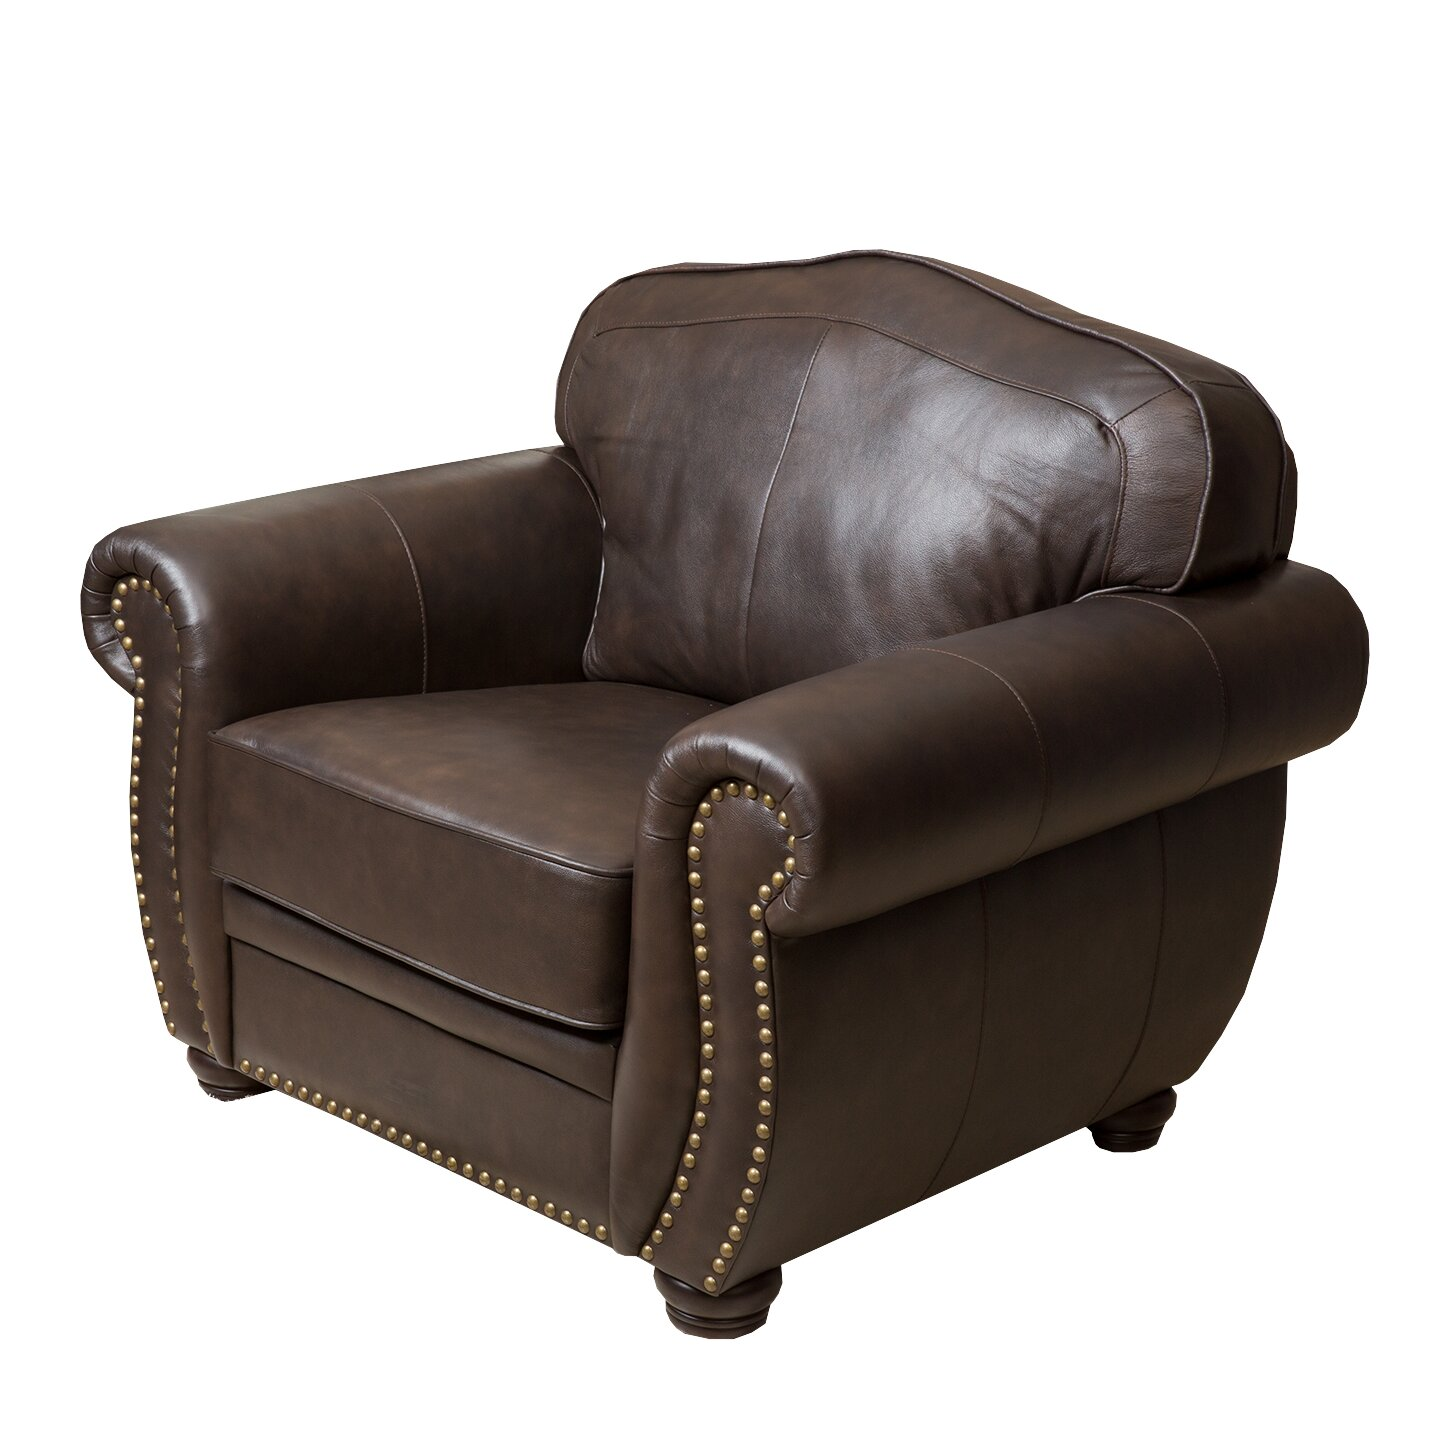 Kenton Leather Arm Chair and Ottoman | Joss & Main